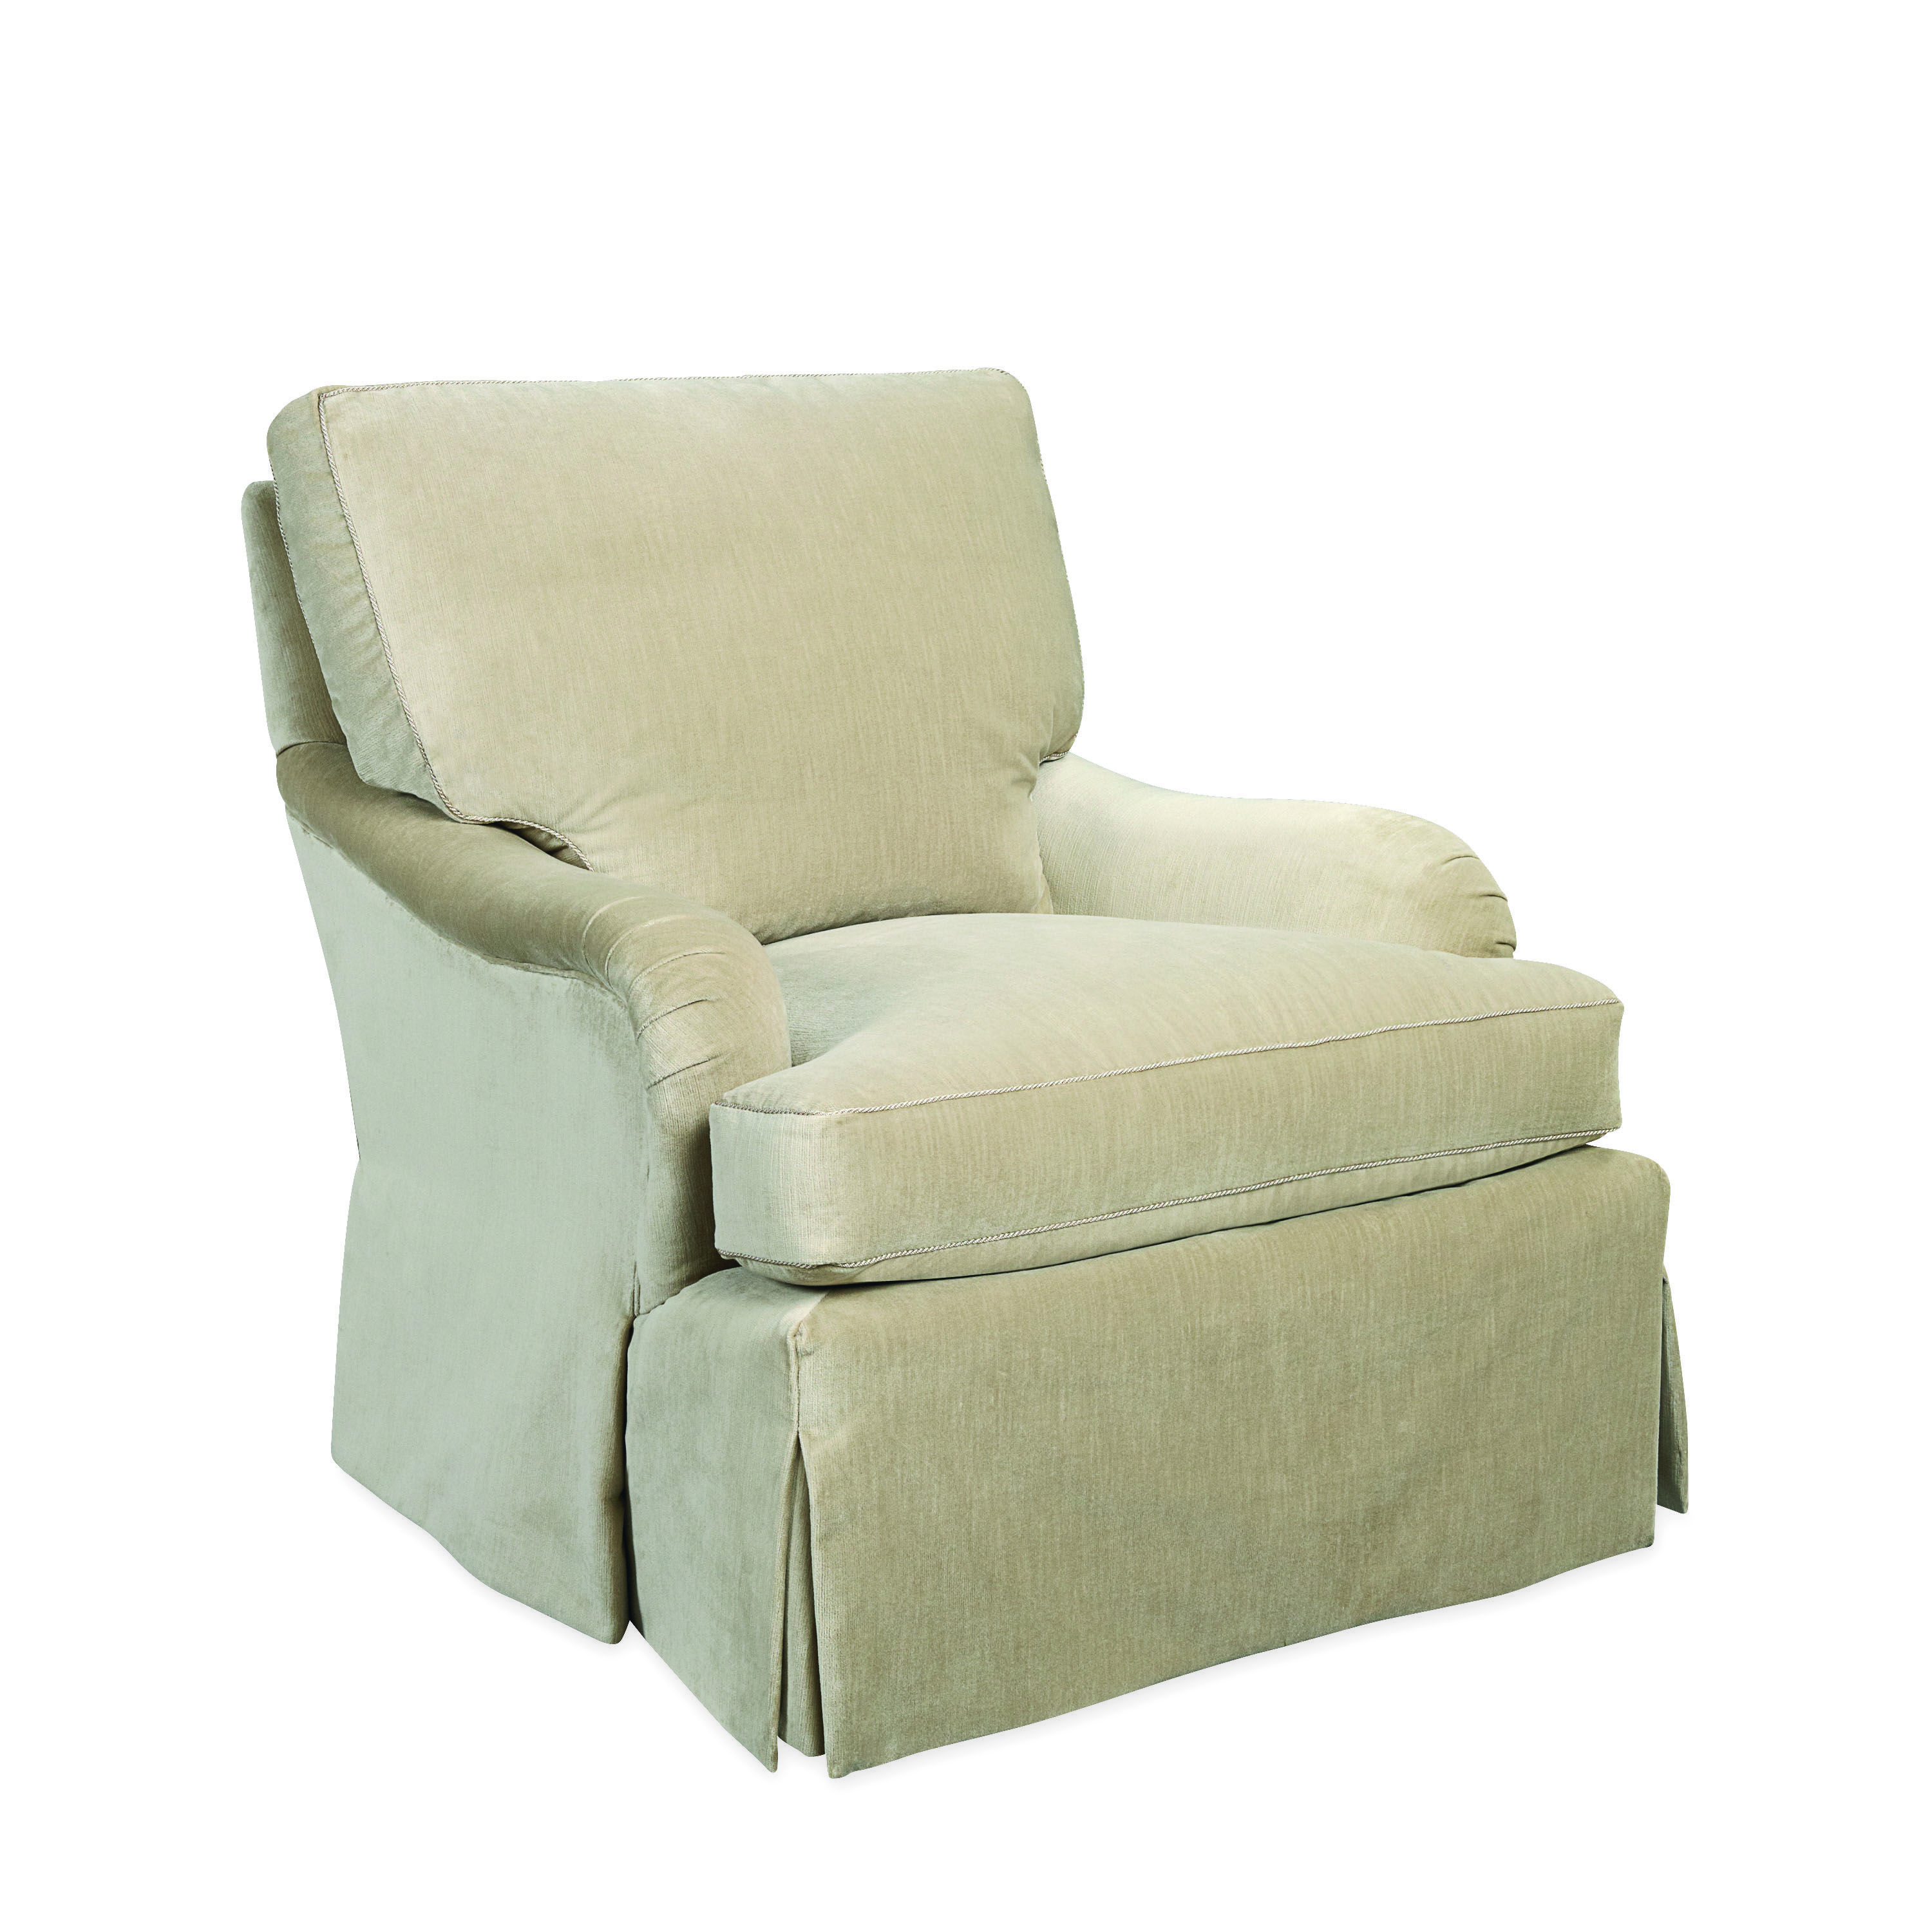 lee industries chairs. Lee Industries Chair In Carson Alabaster Chairs O